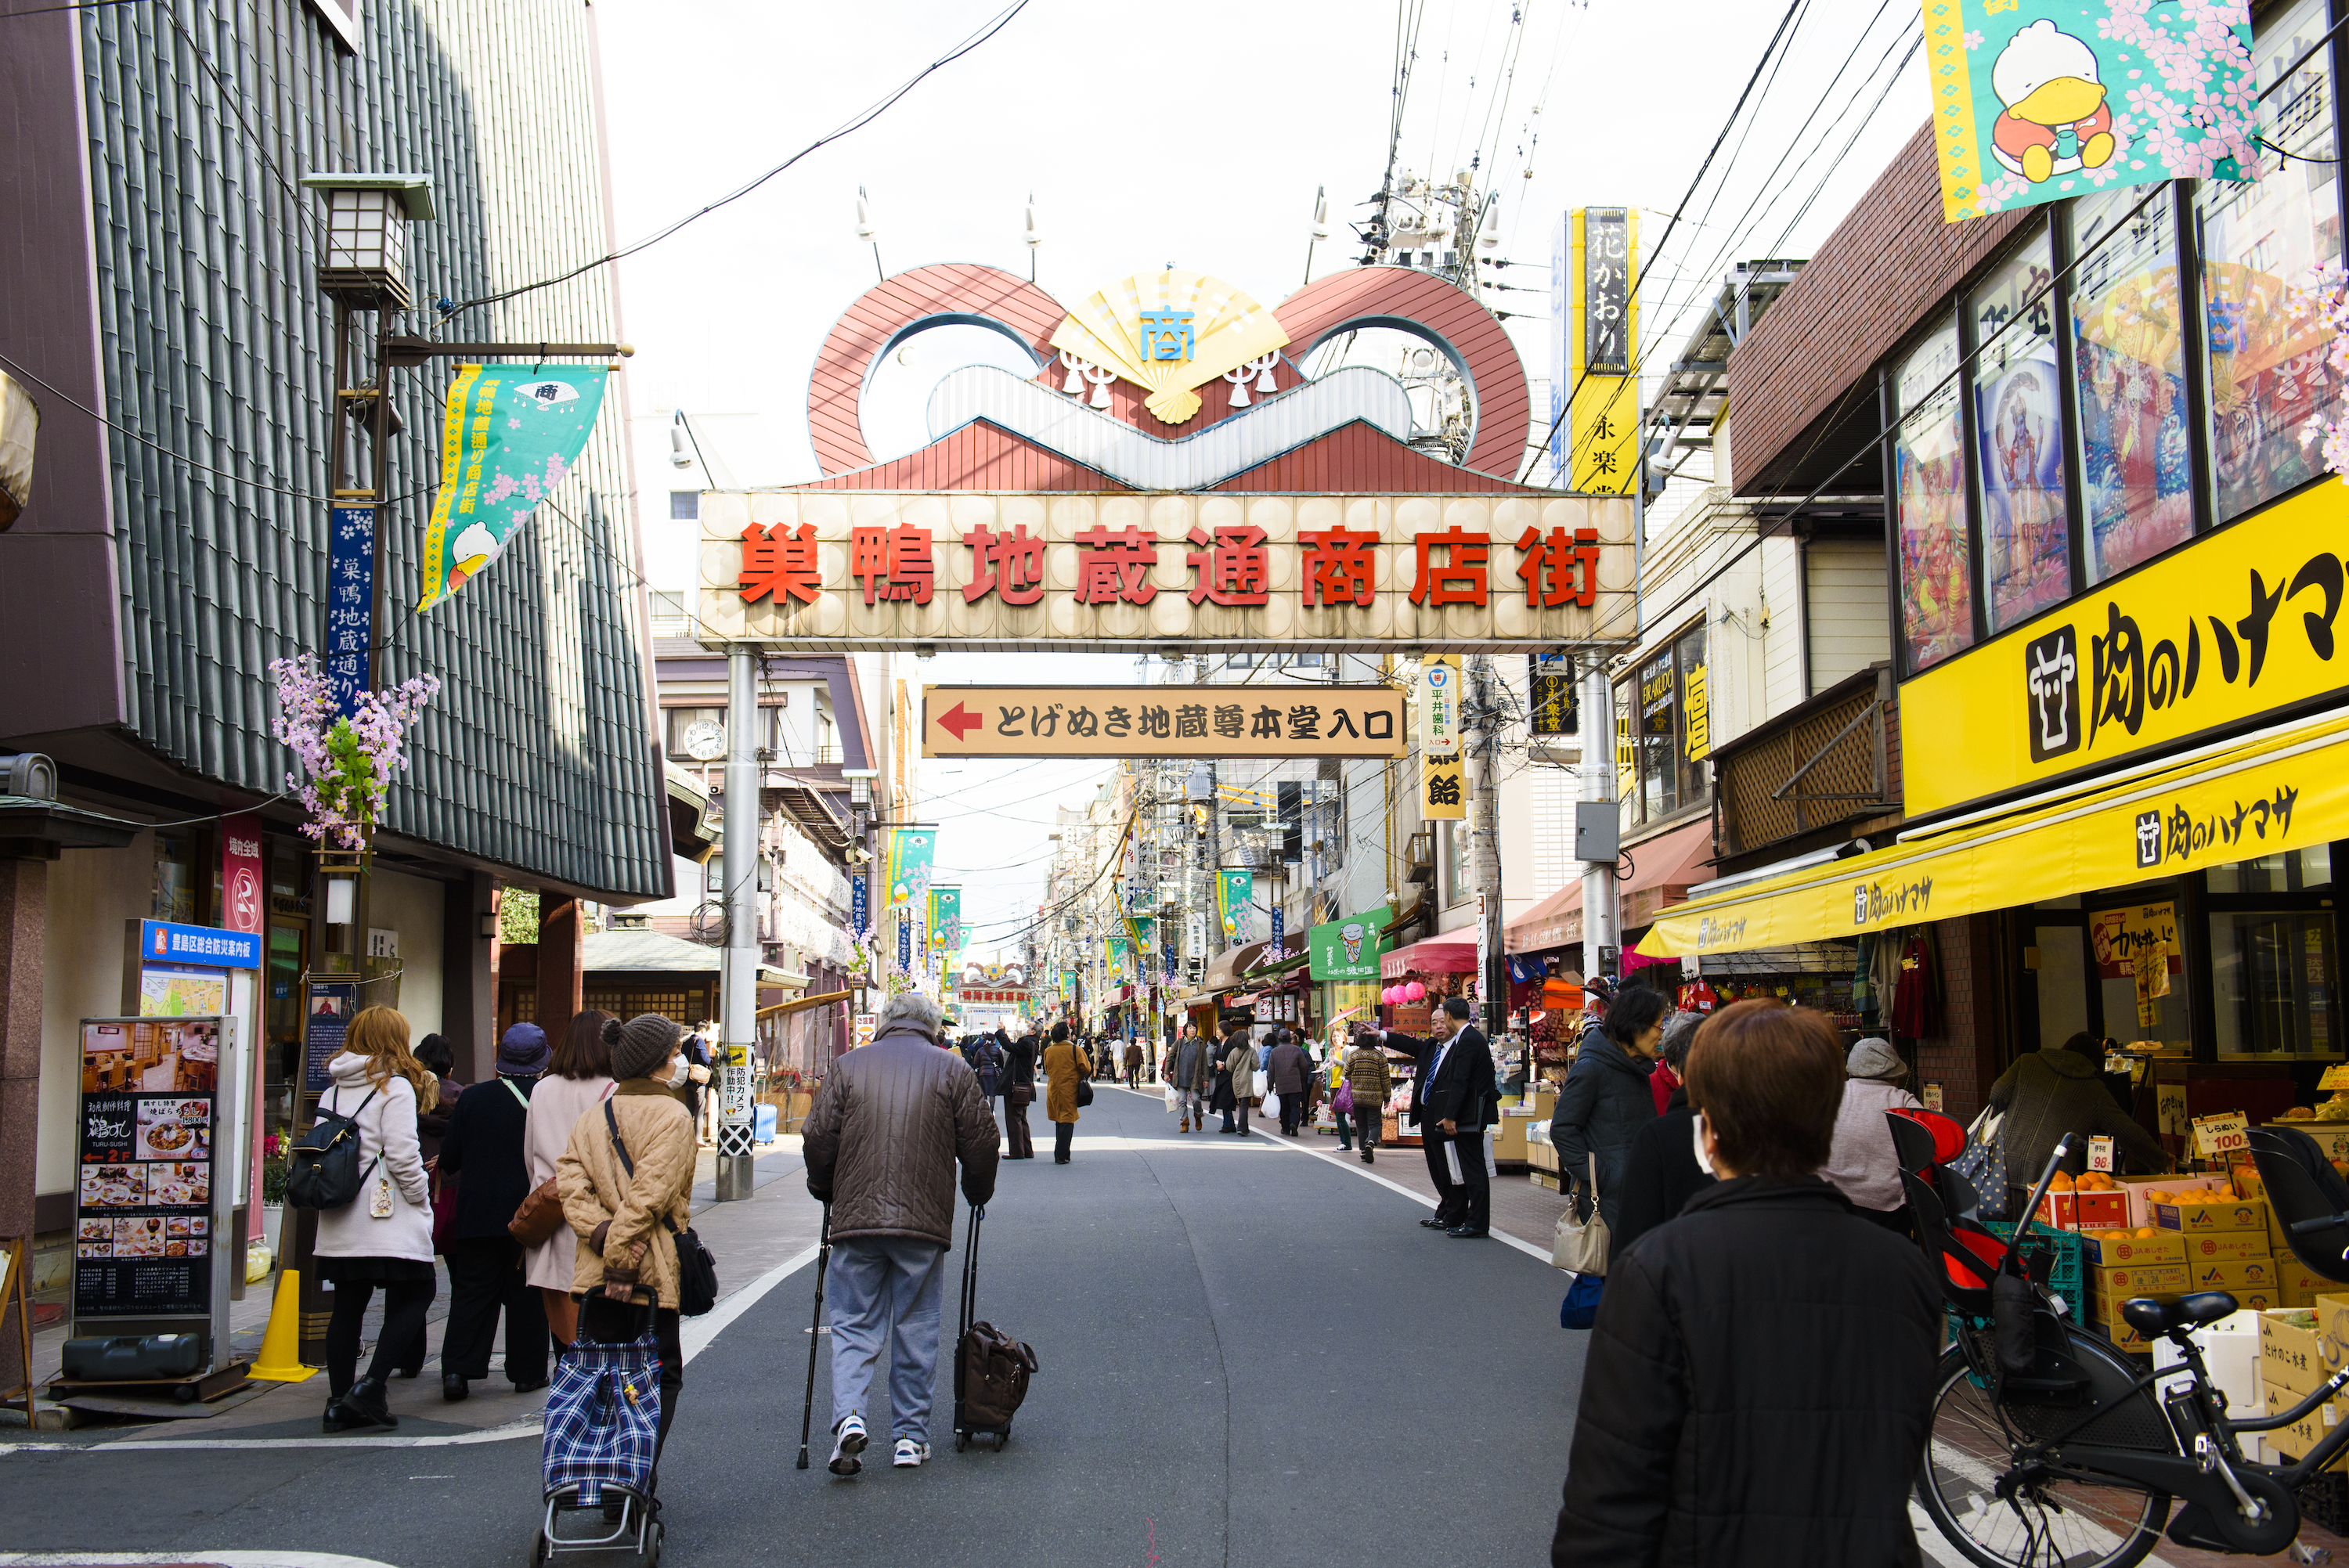 Why is Sugamo known as 'Harajuku for grannies'?